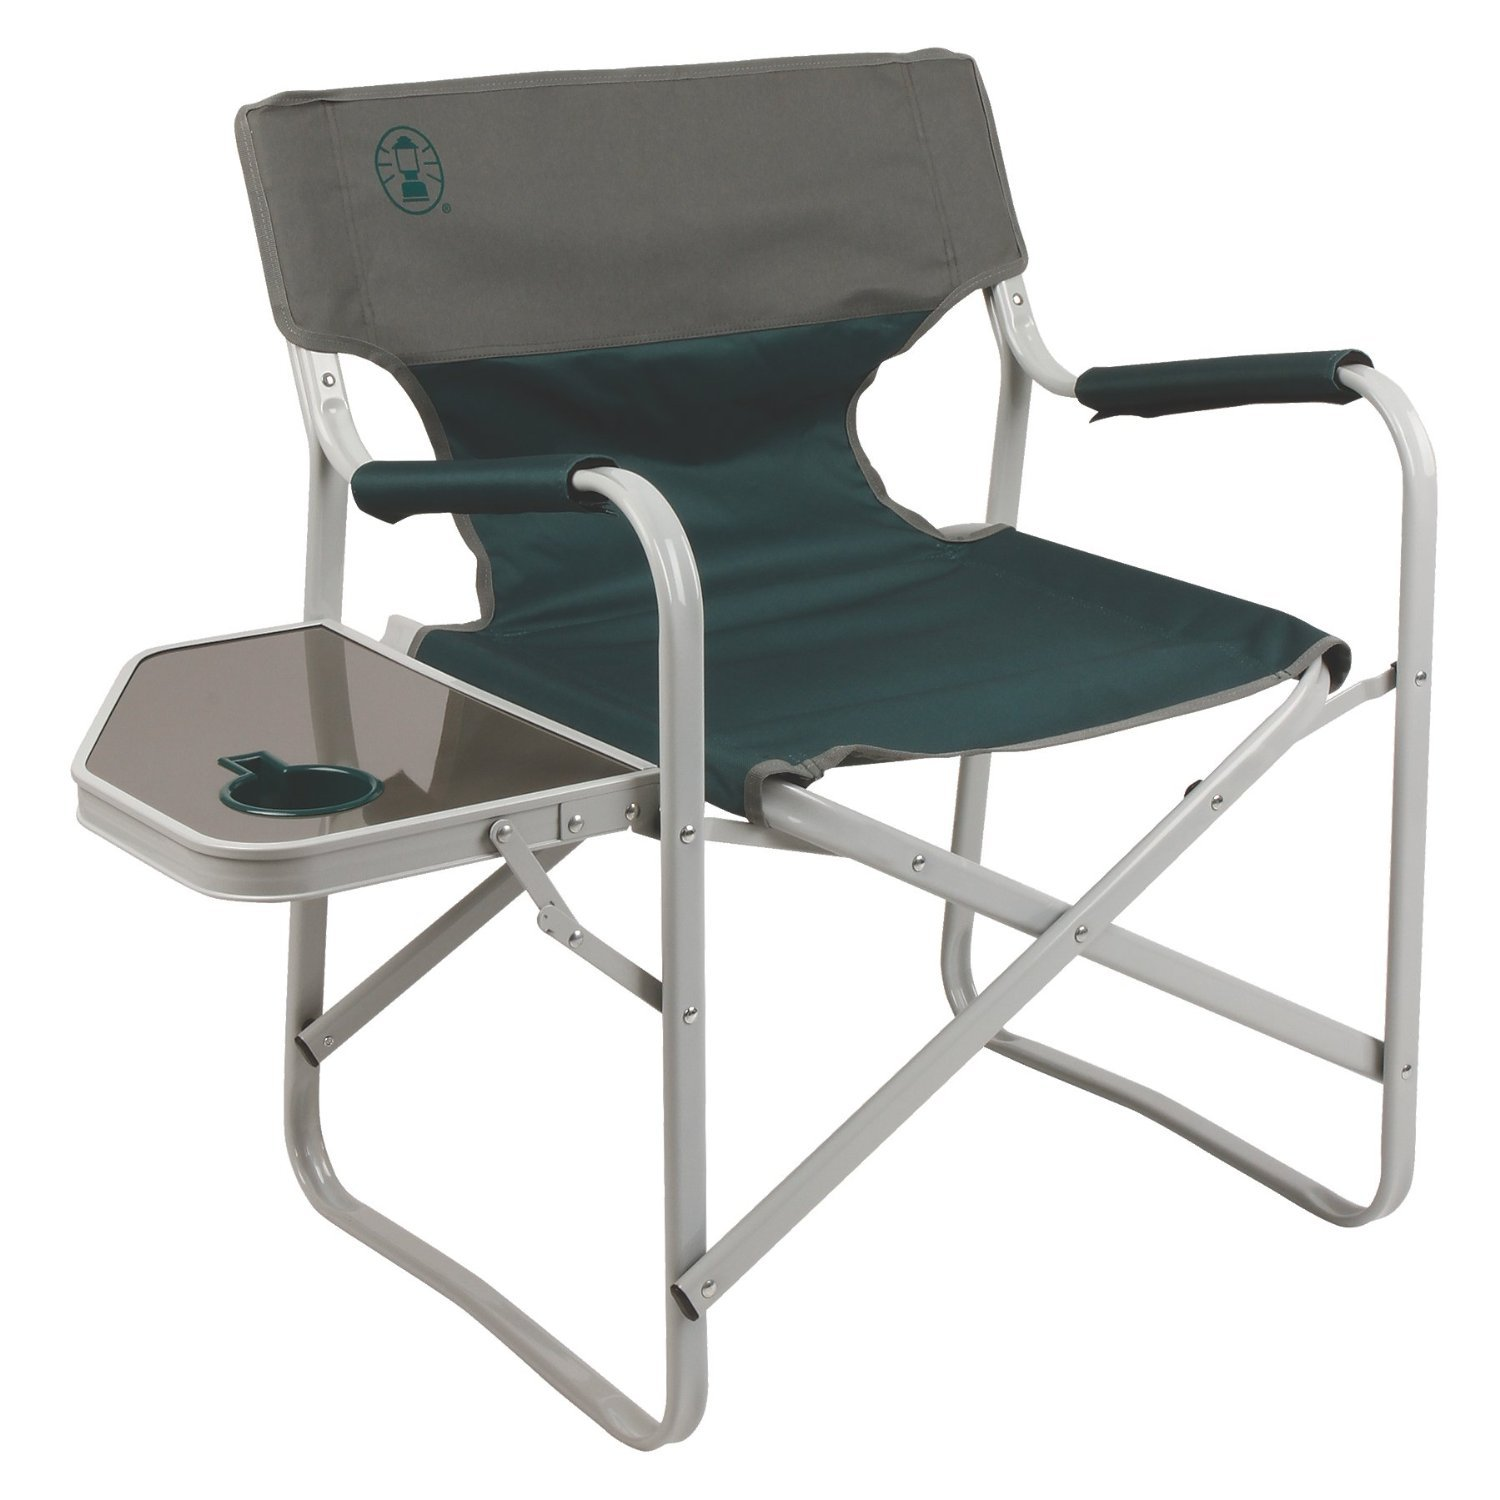 Coleman Outpost Elite Deck Chair with Side Table, Les Green [並行輸入品] B01IRFWOC6